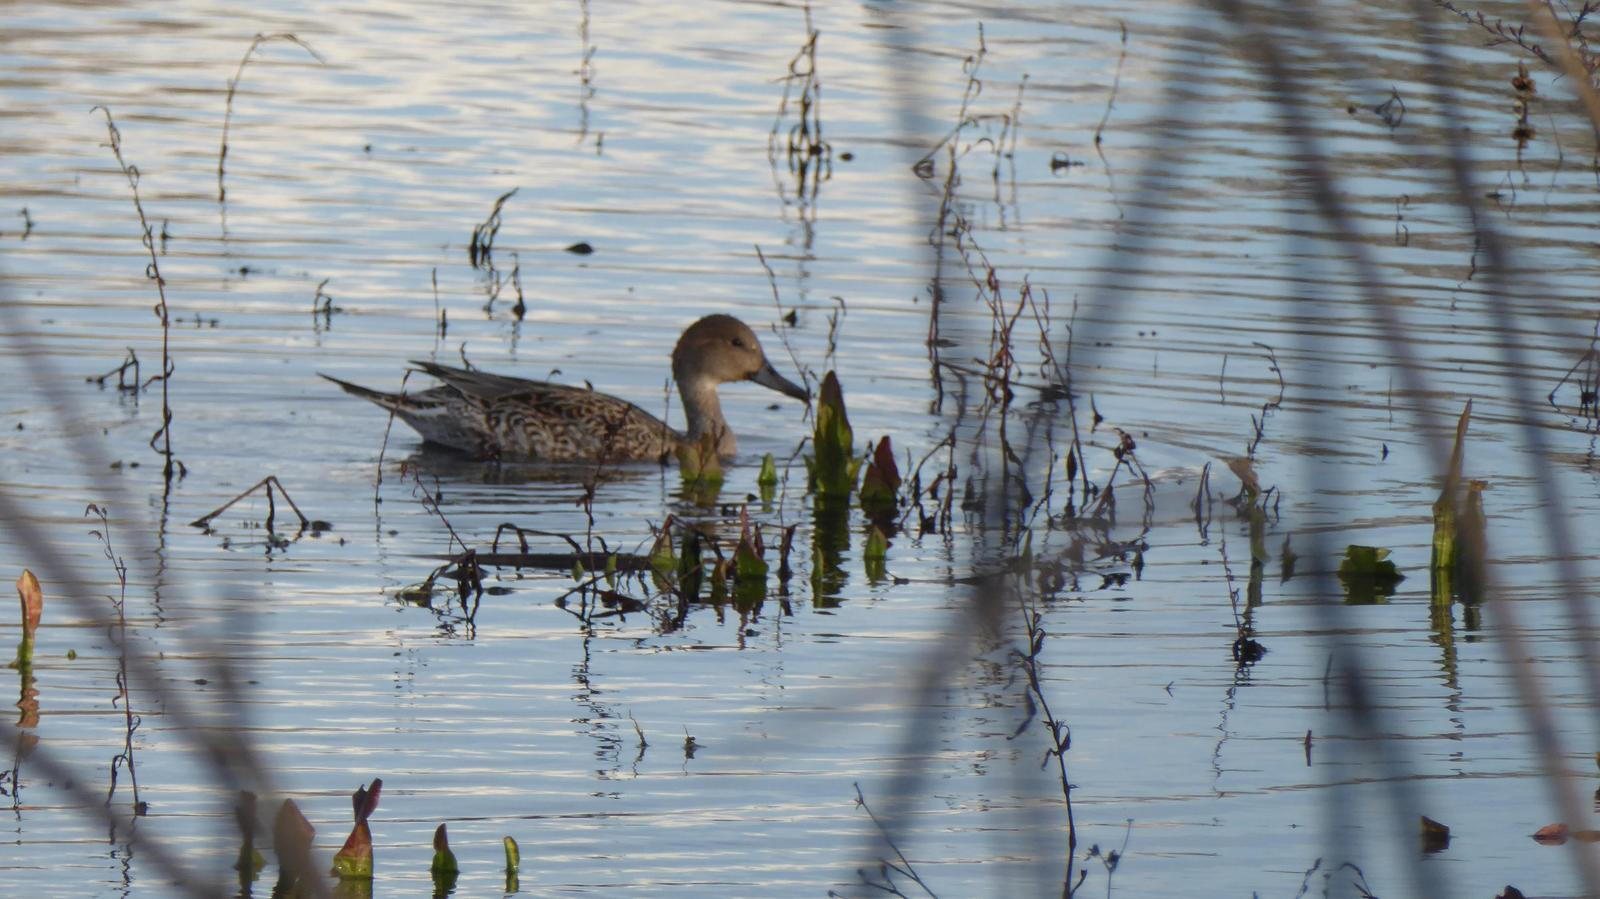 Northern Pintail Photo by Daliel Leite